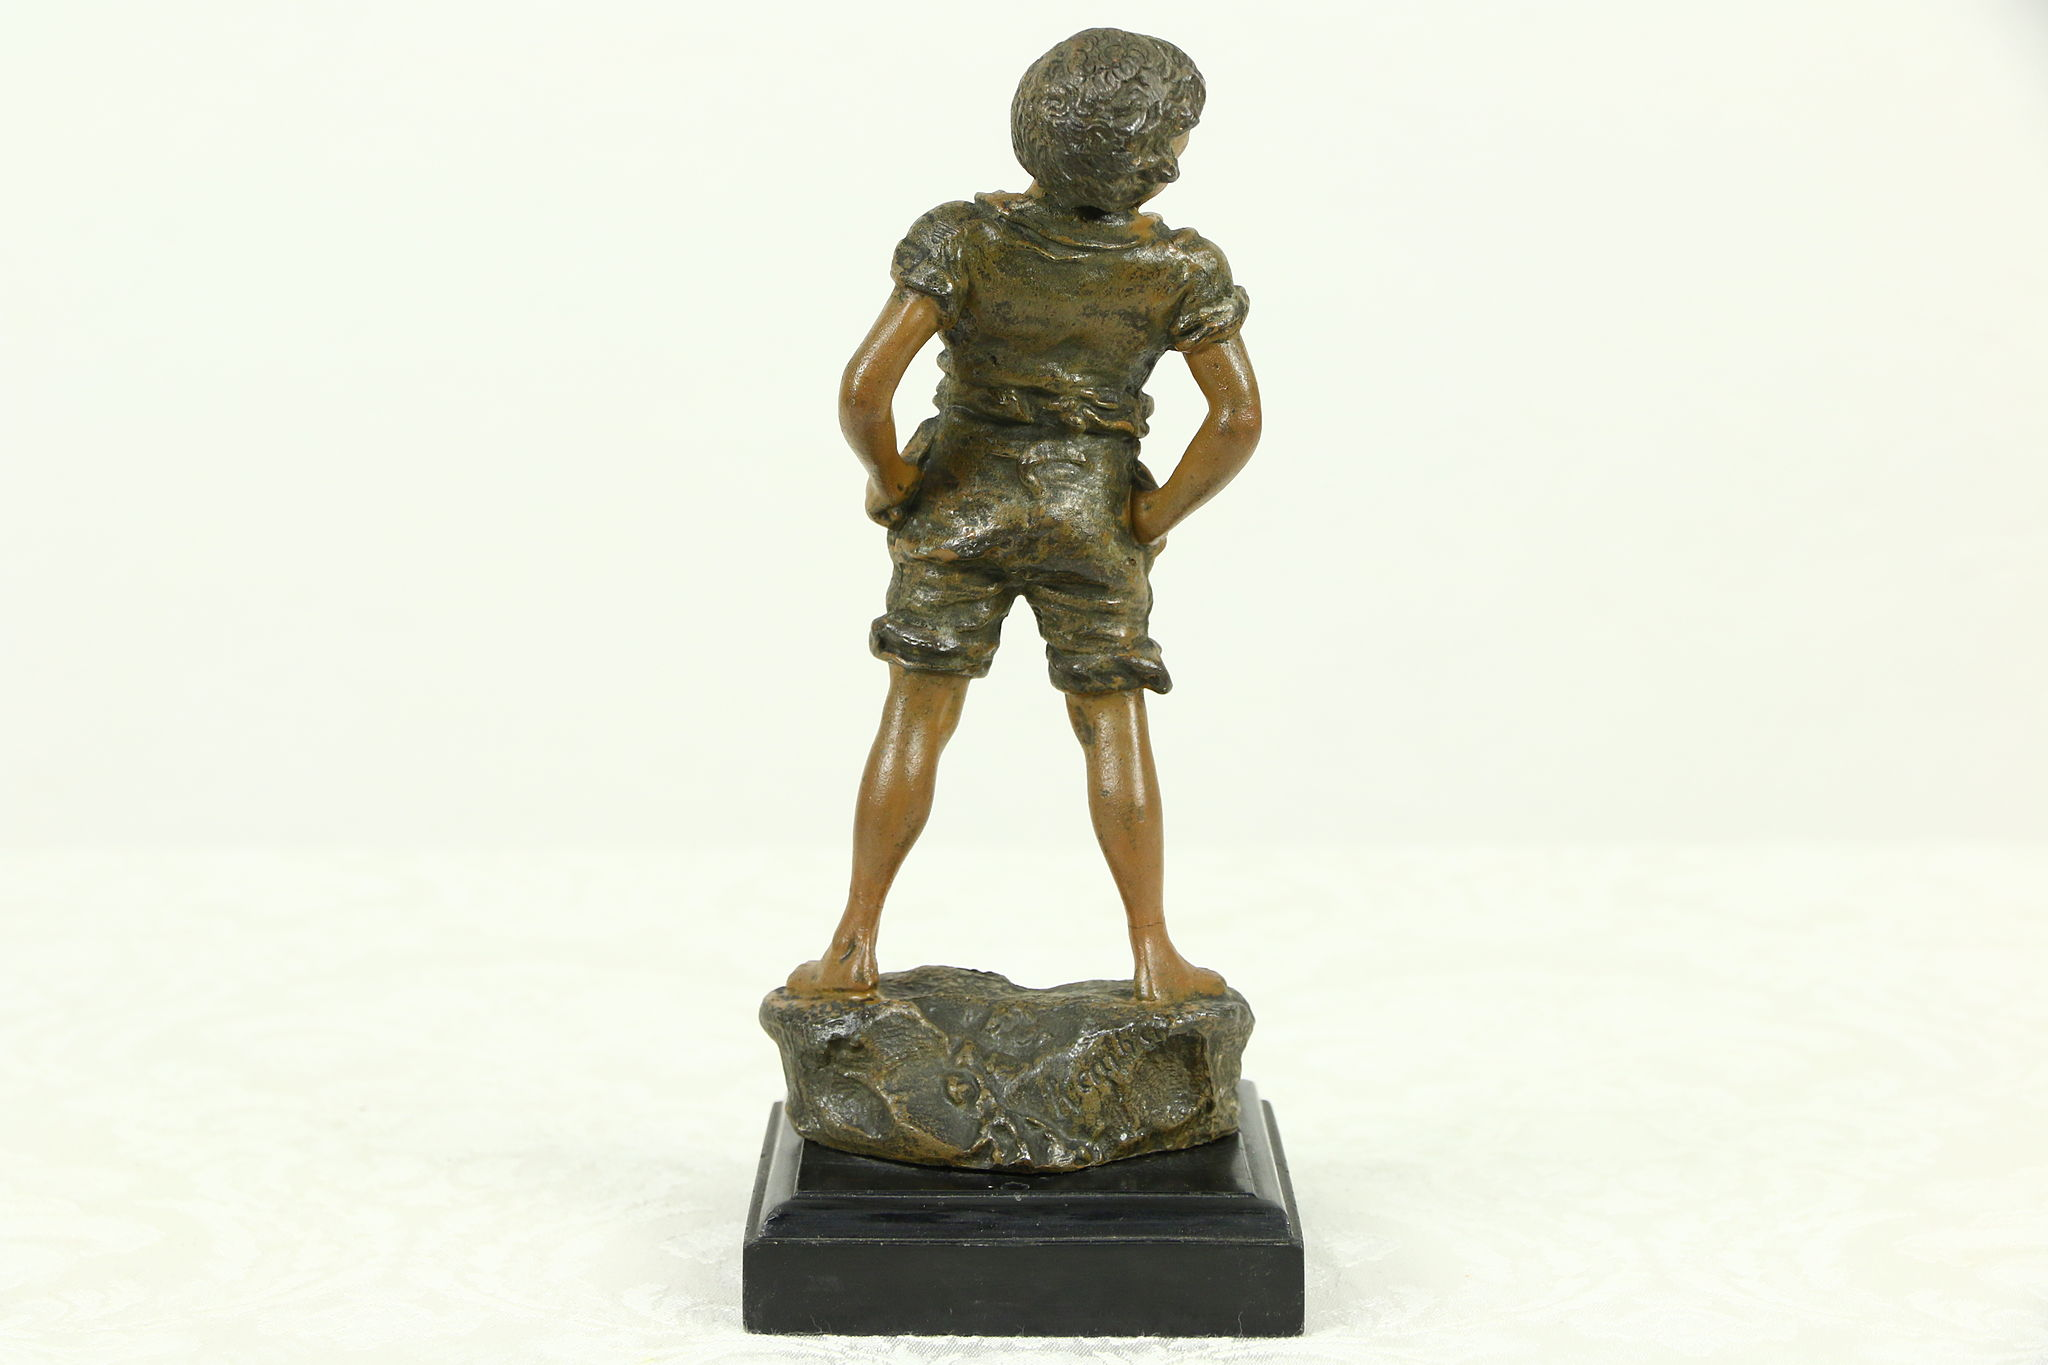 Statue Of A Boy Hand Painted 1900 Antique Sculpture Signed Carl Kaube